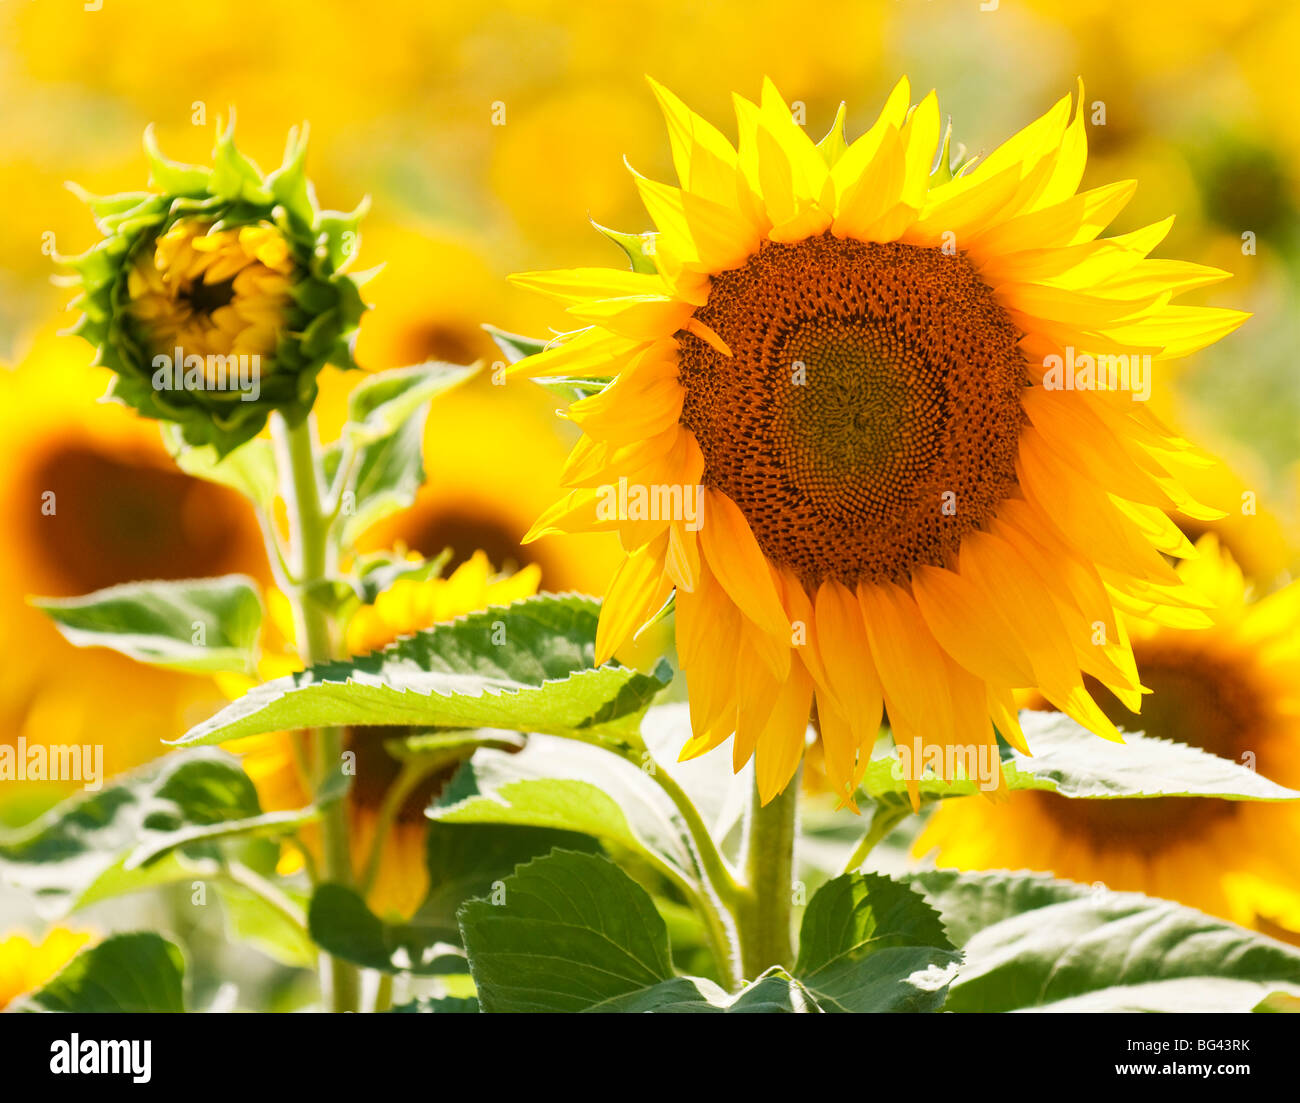 Close-up of a sunflower, Provence, France - Stock Image